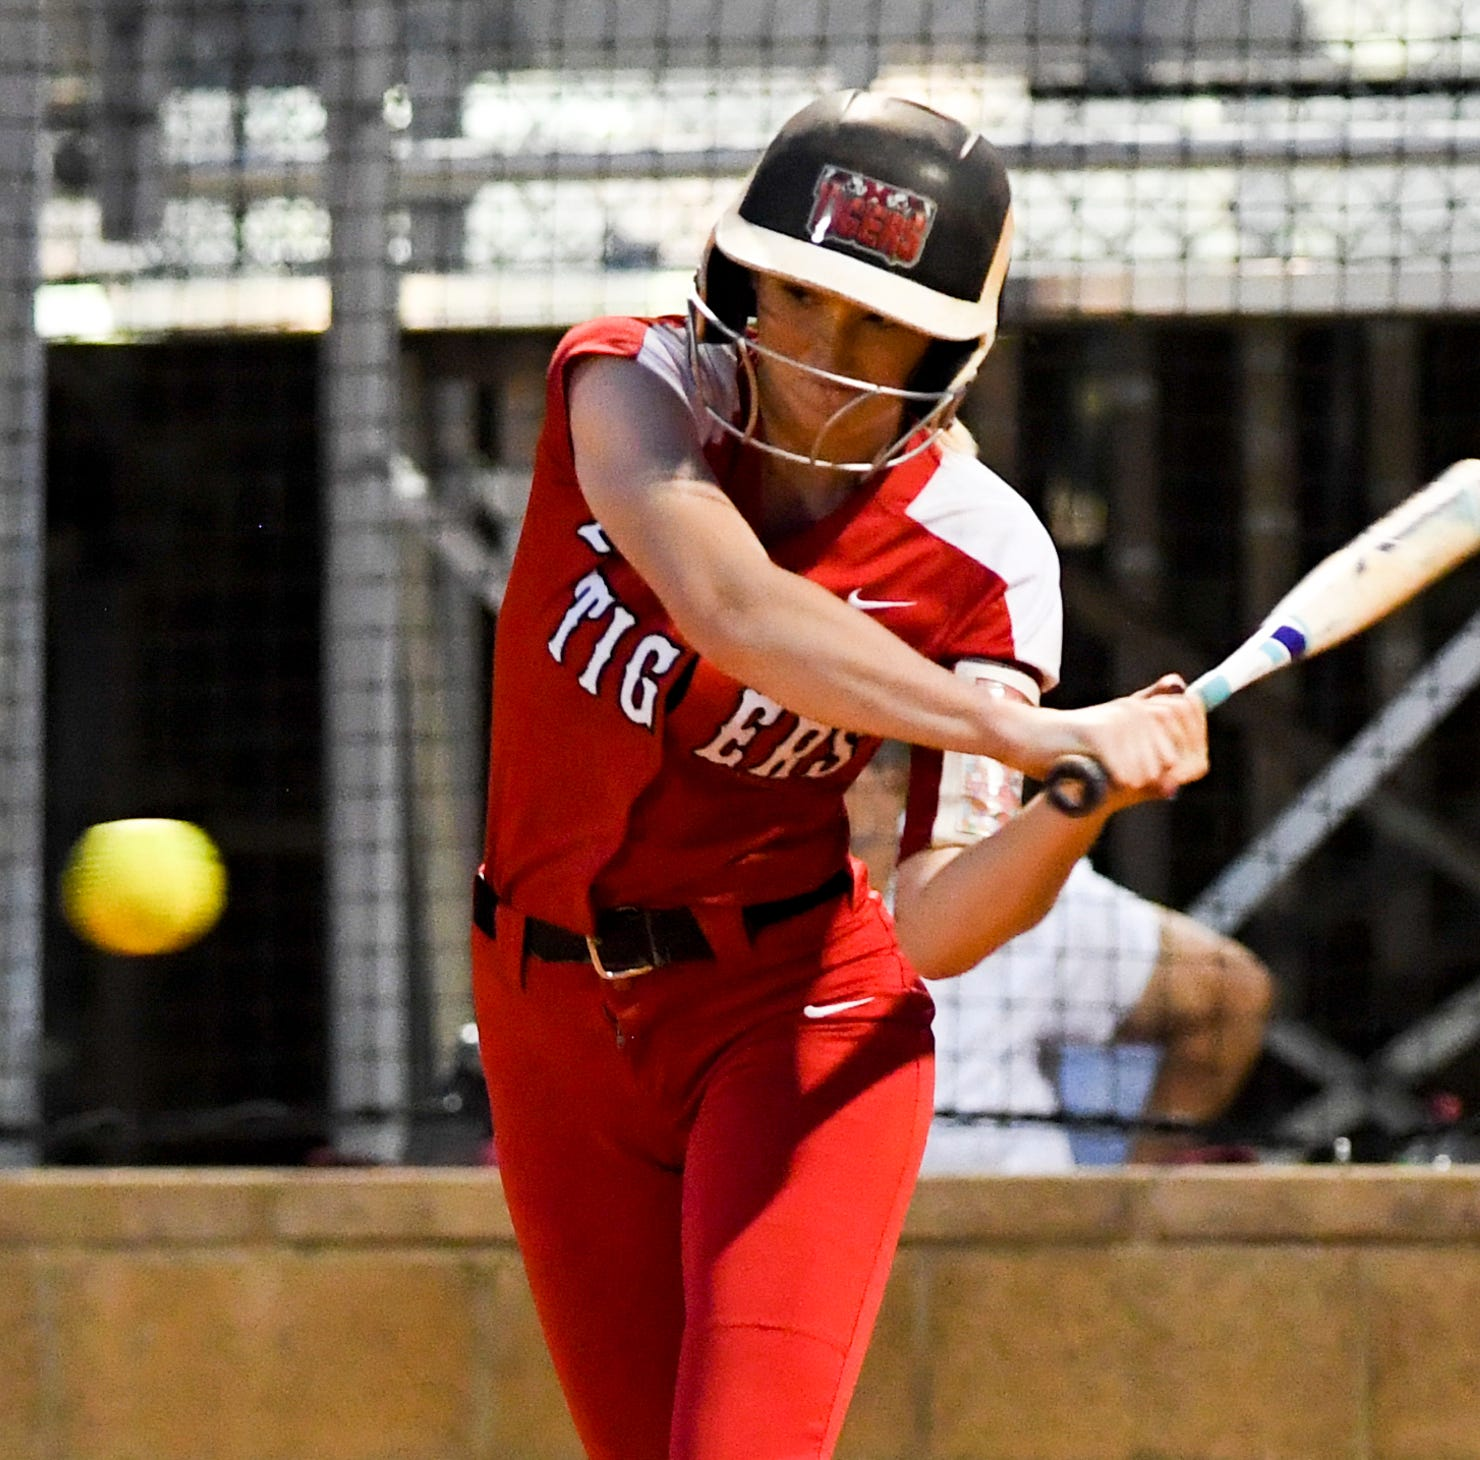 After 3-year absence, Lexington softball back in state tournament